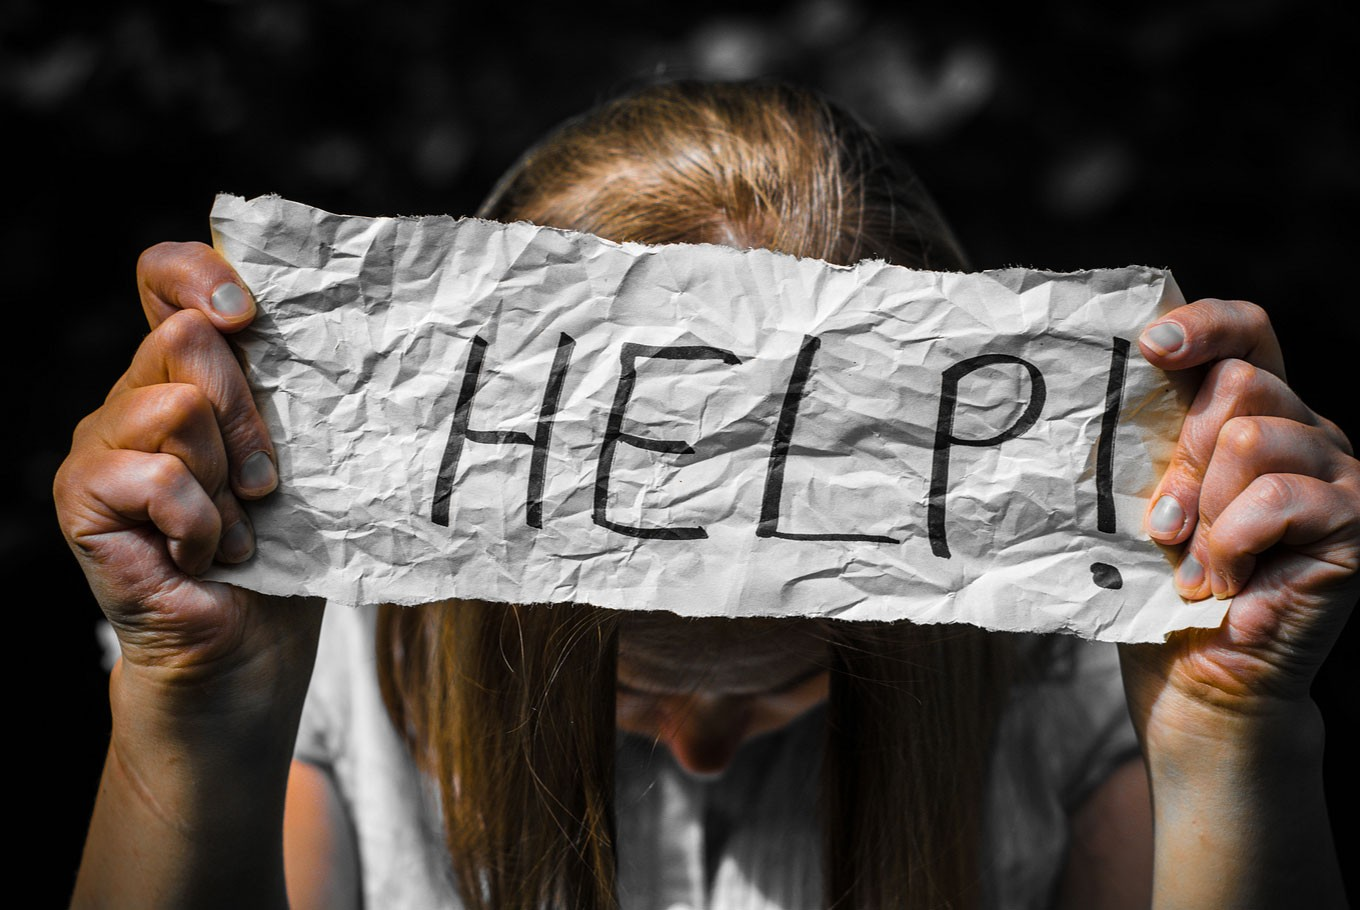 Before stress leads to suicide, here's how you can help